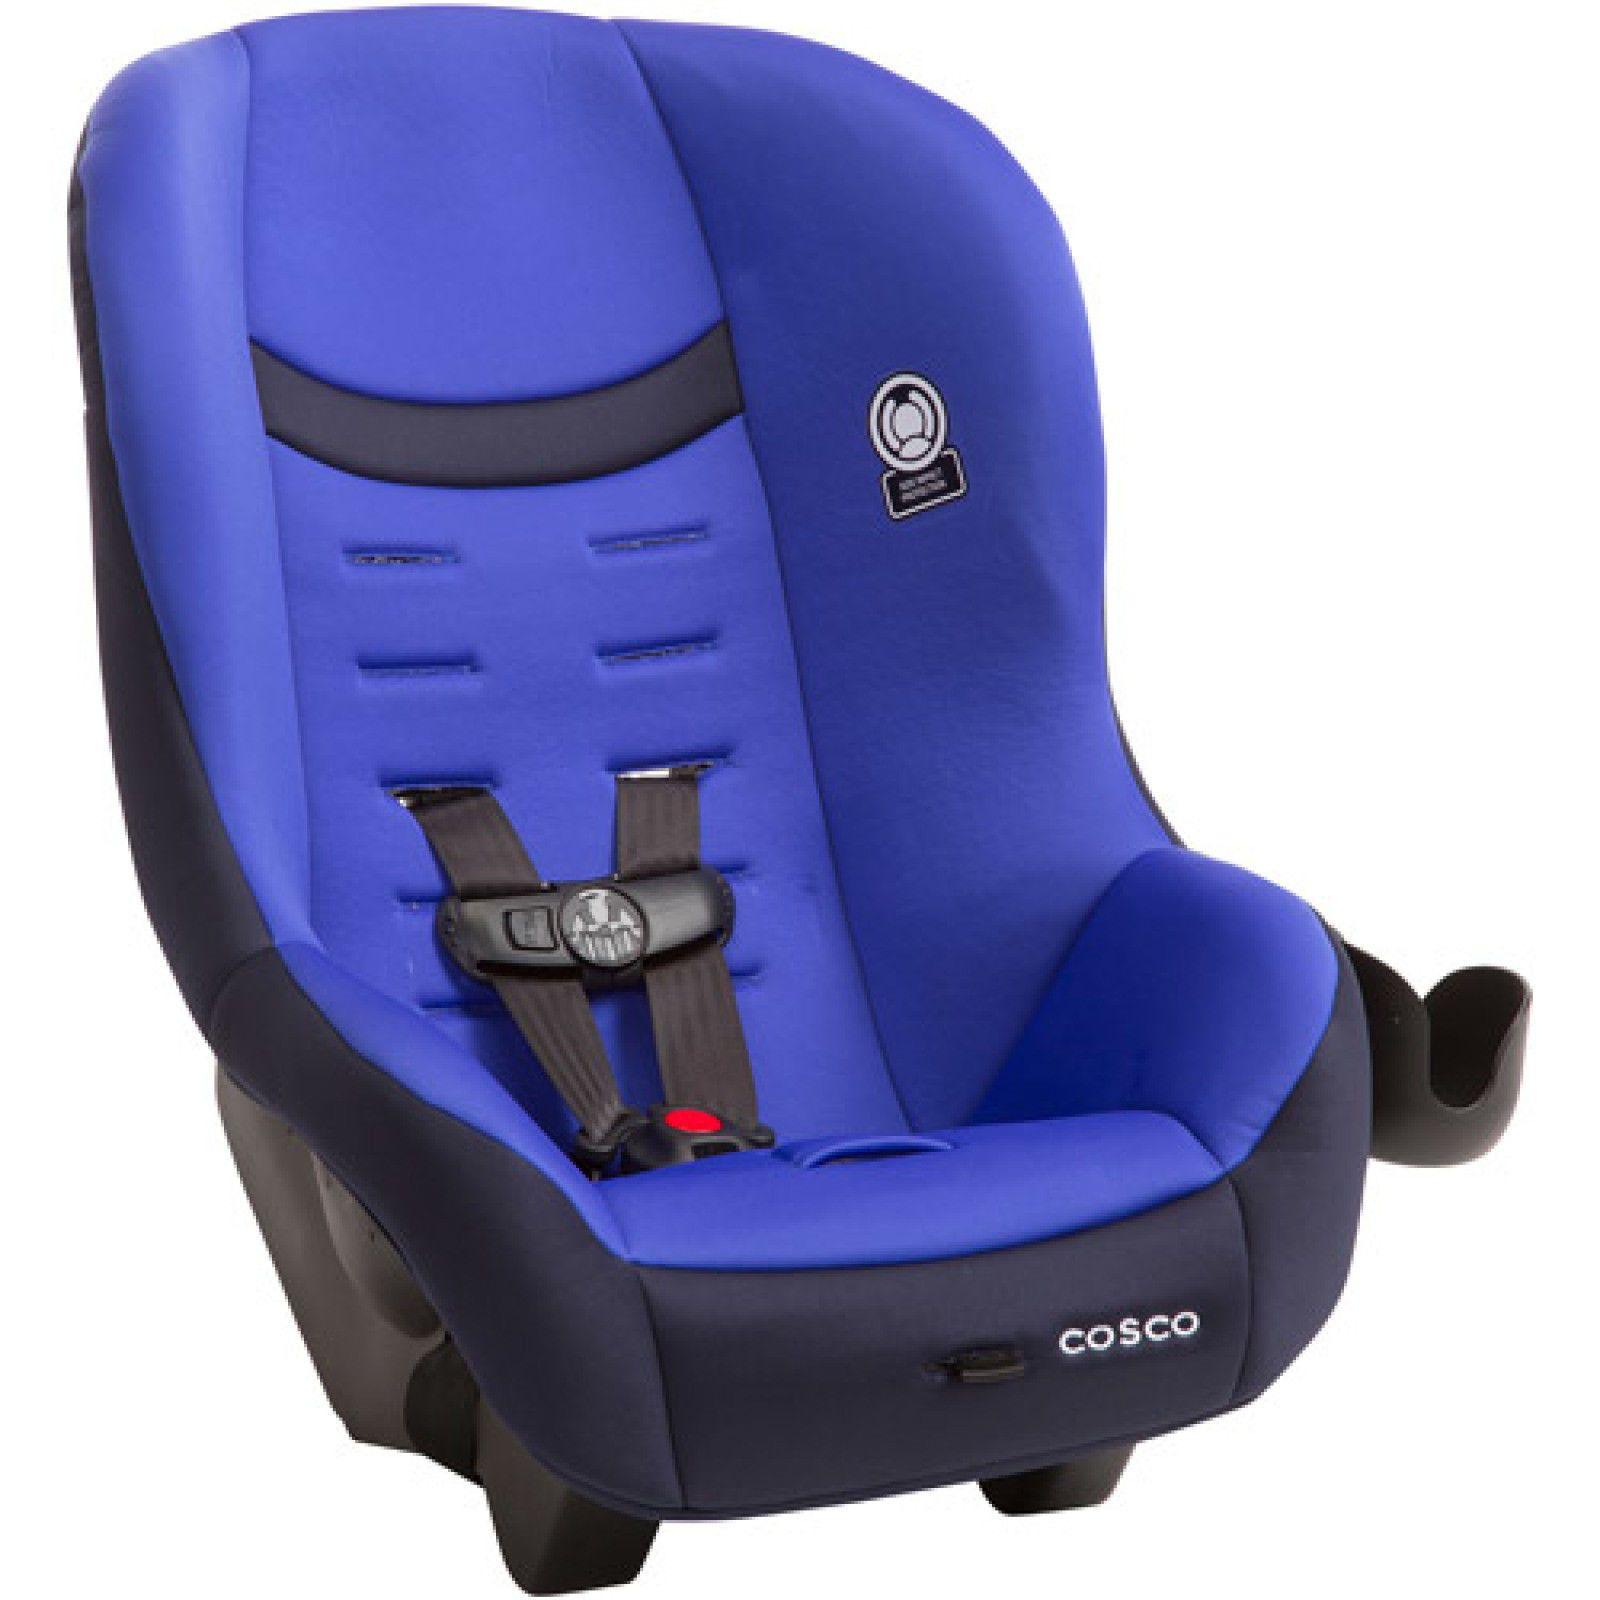 Details about Cosco Scenera NEXT Convertible Car Seat